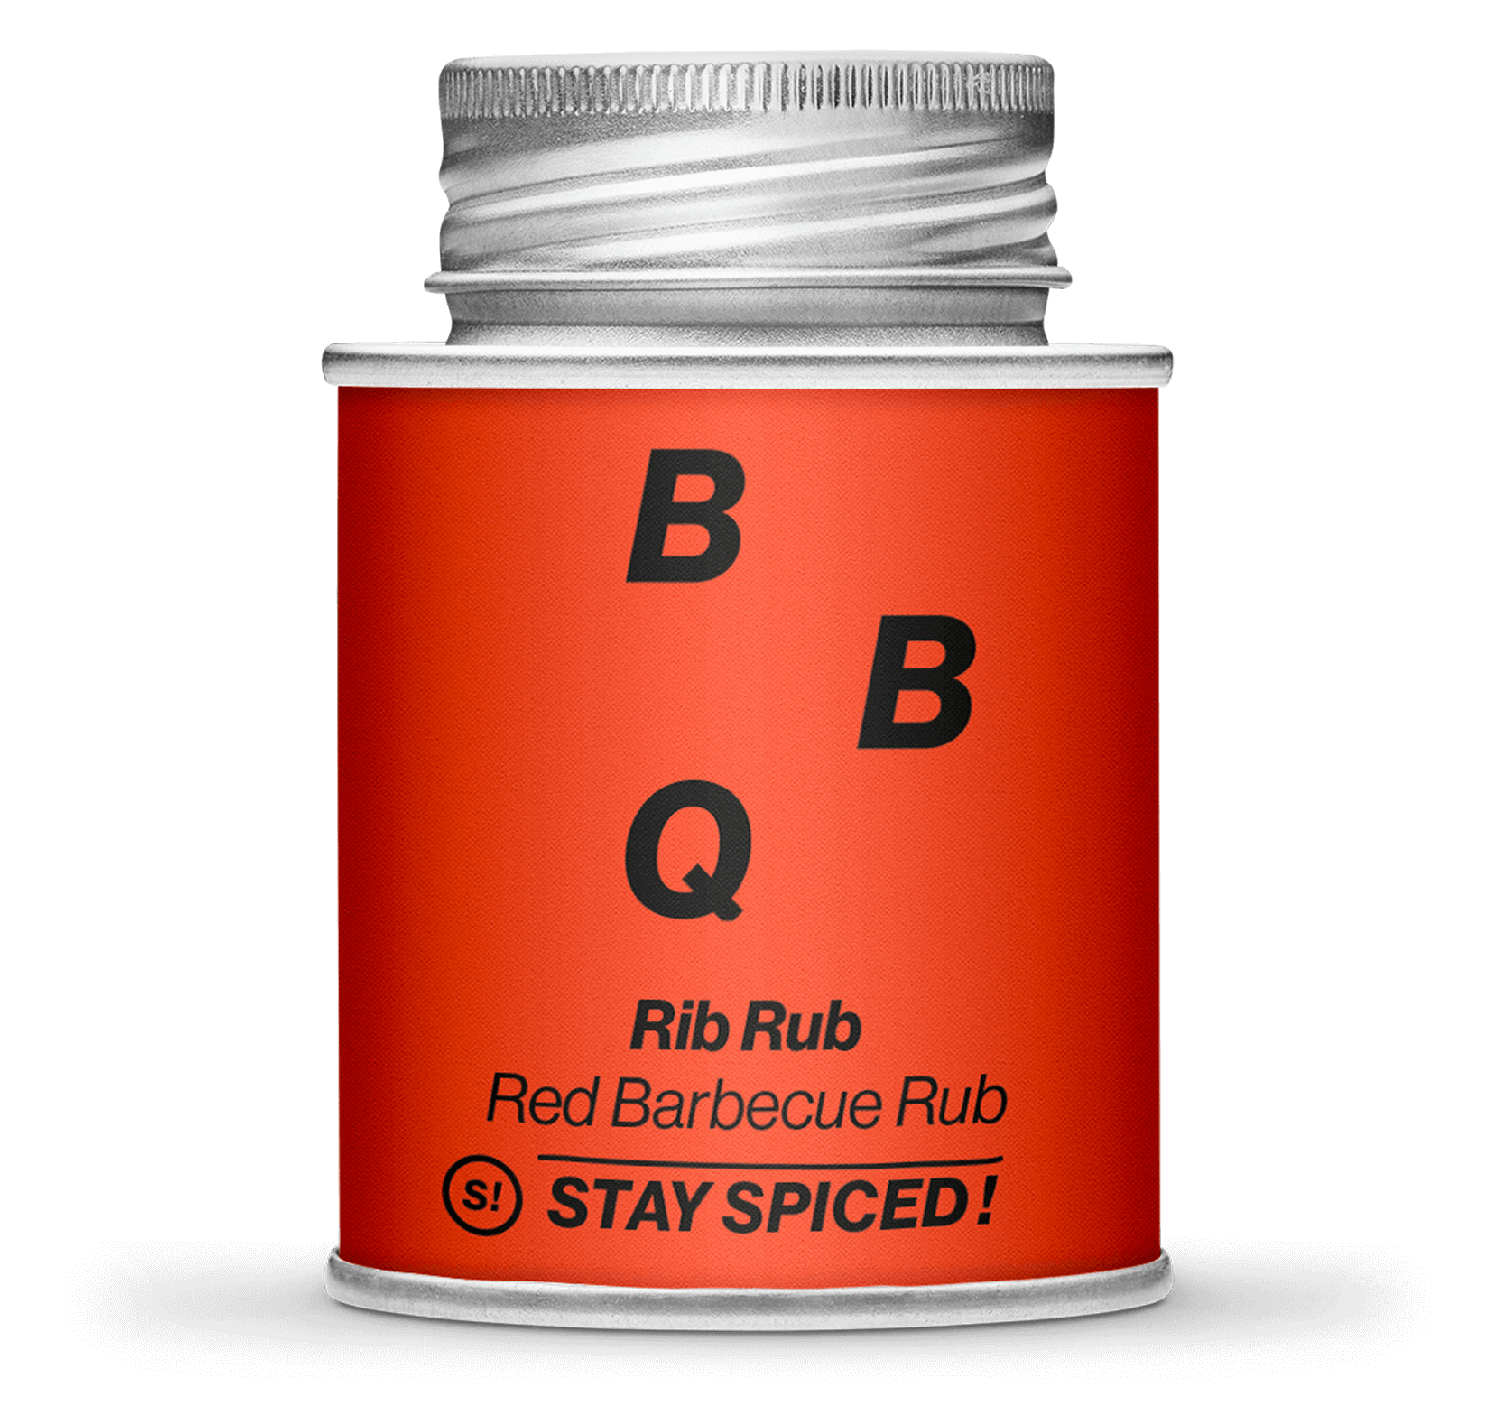 Barbecue-for-Champions - BBQ Rib-Rub